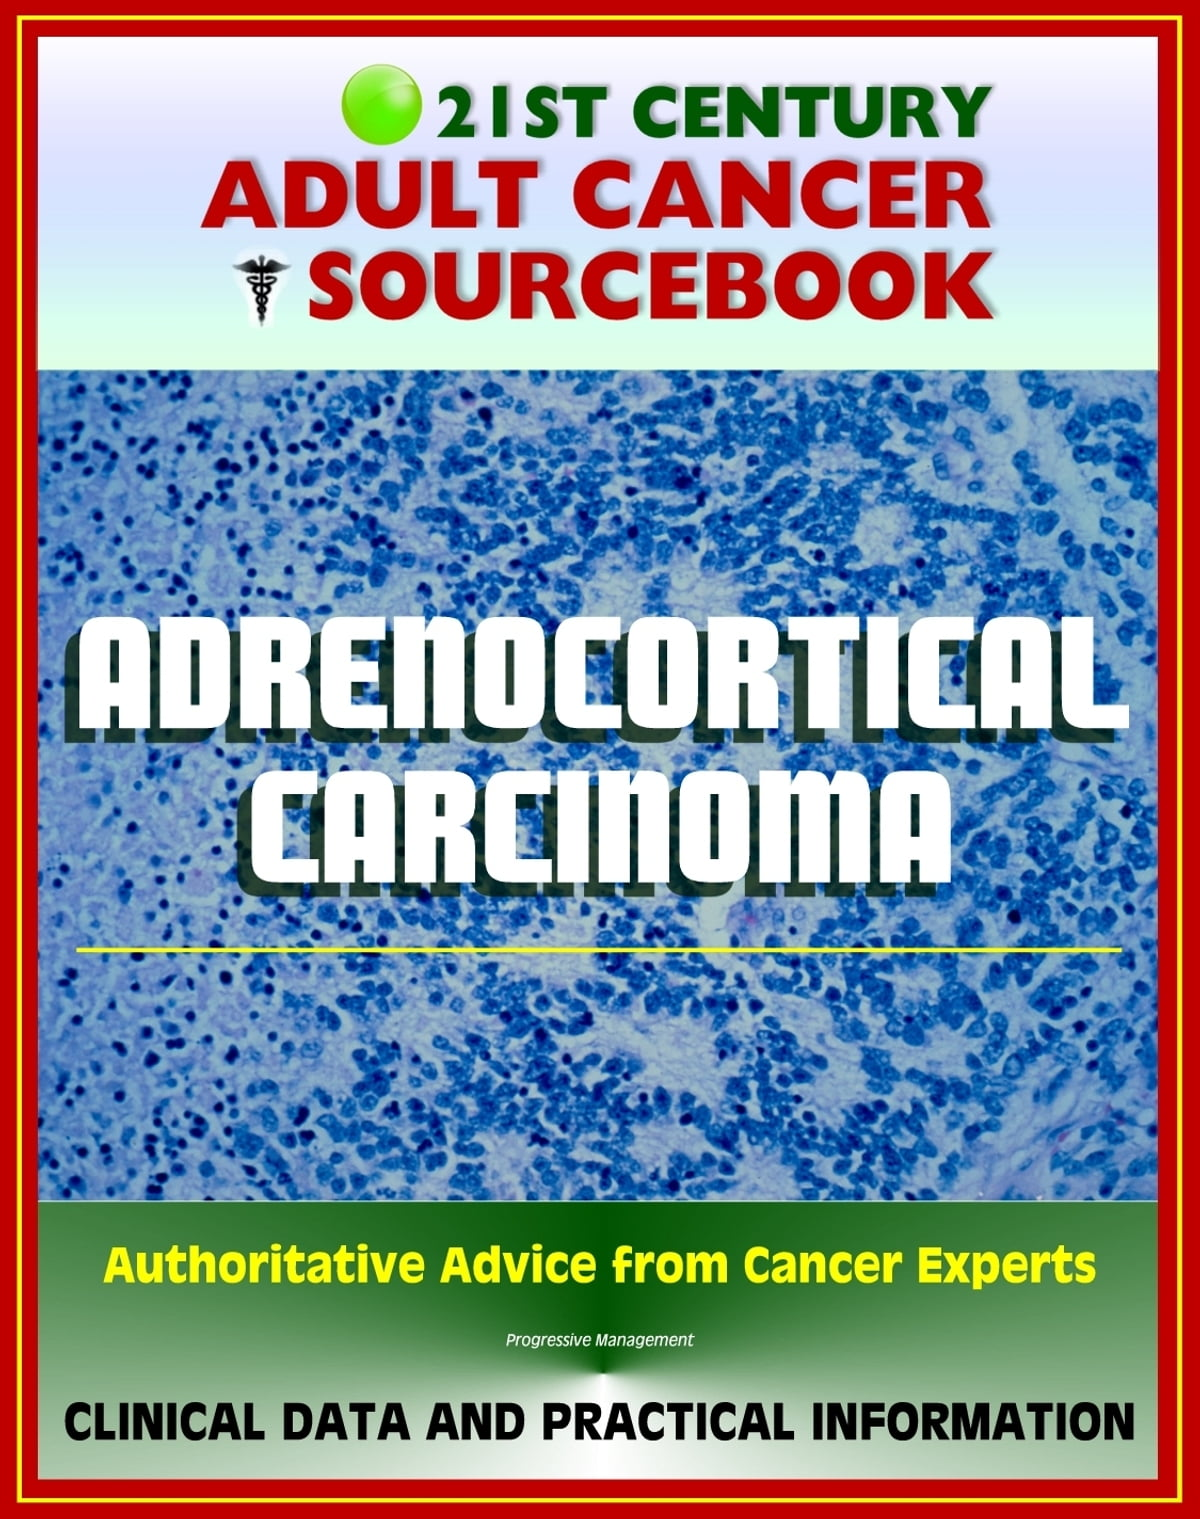 21st Century Adult Cancer Sourcebook Adrenocortical Carcinoma Cancer Of The Adrenal Cortex Clinical Data For Patients Families And Physicians